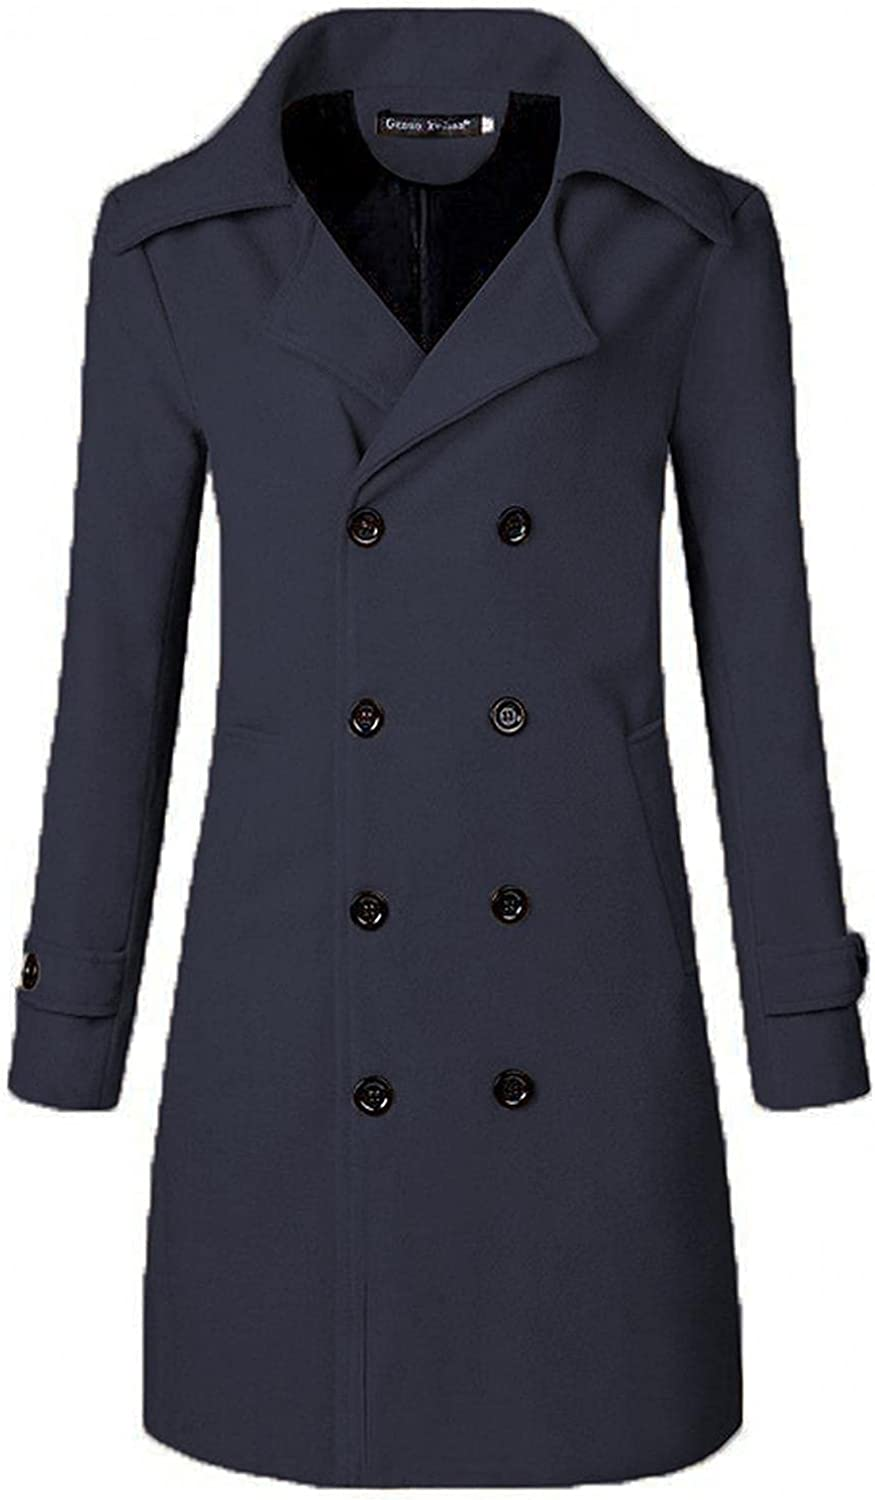 Men's Winter Trench Coat, Stylish Slim Tops Premium Notched Collar Double Breasted Jacket Parka Long Pea Overcoat